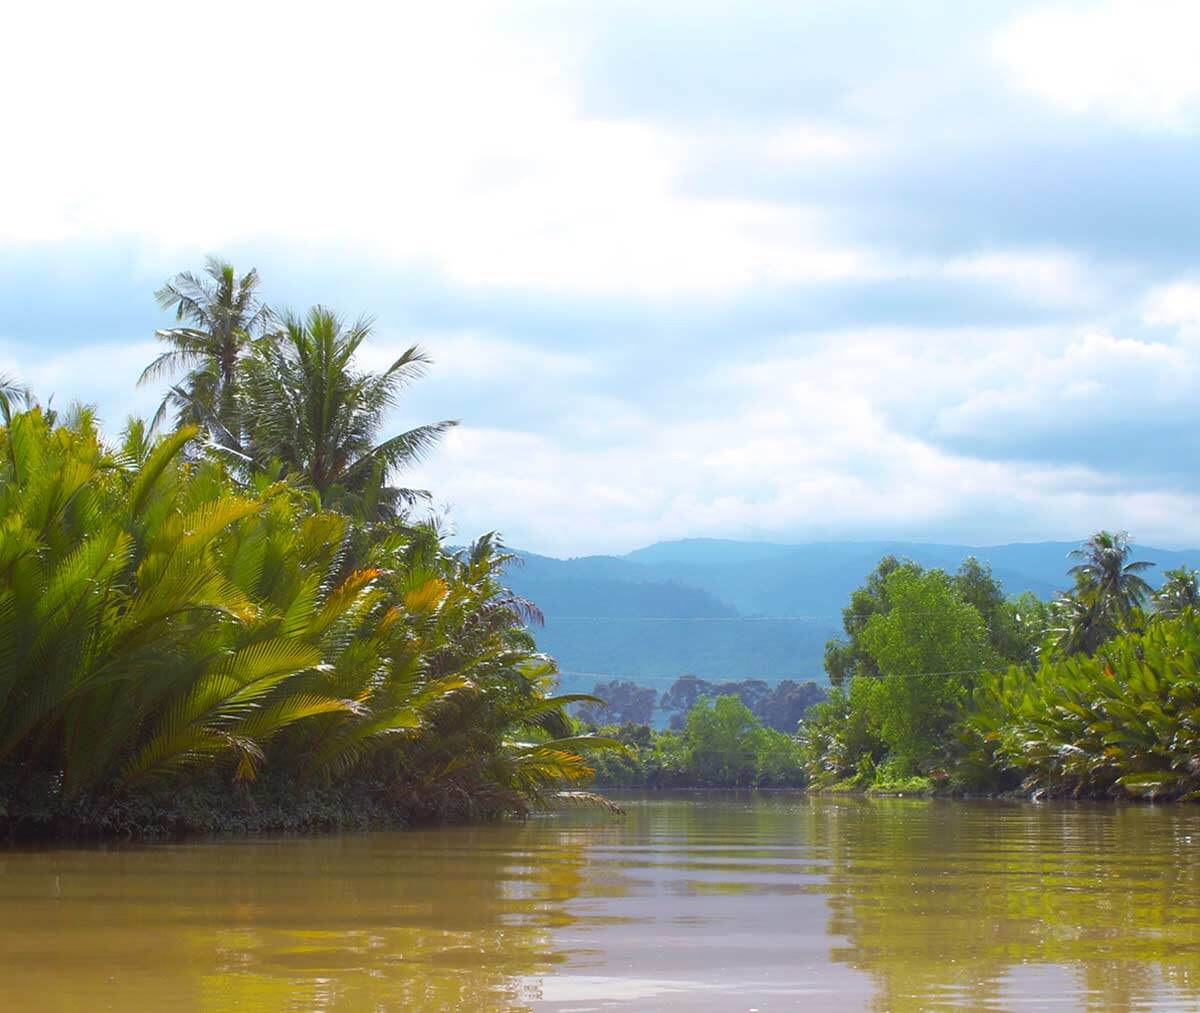 Bootstour - Love The River - Kampot River